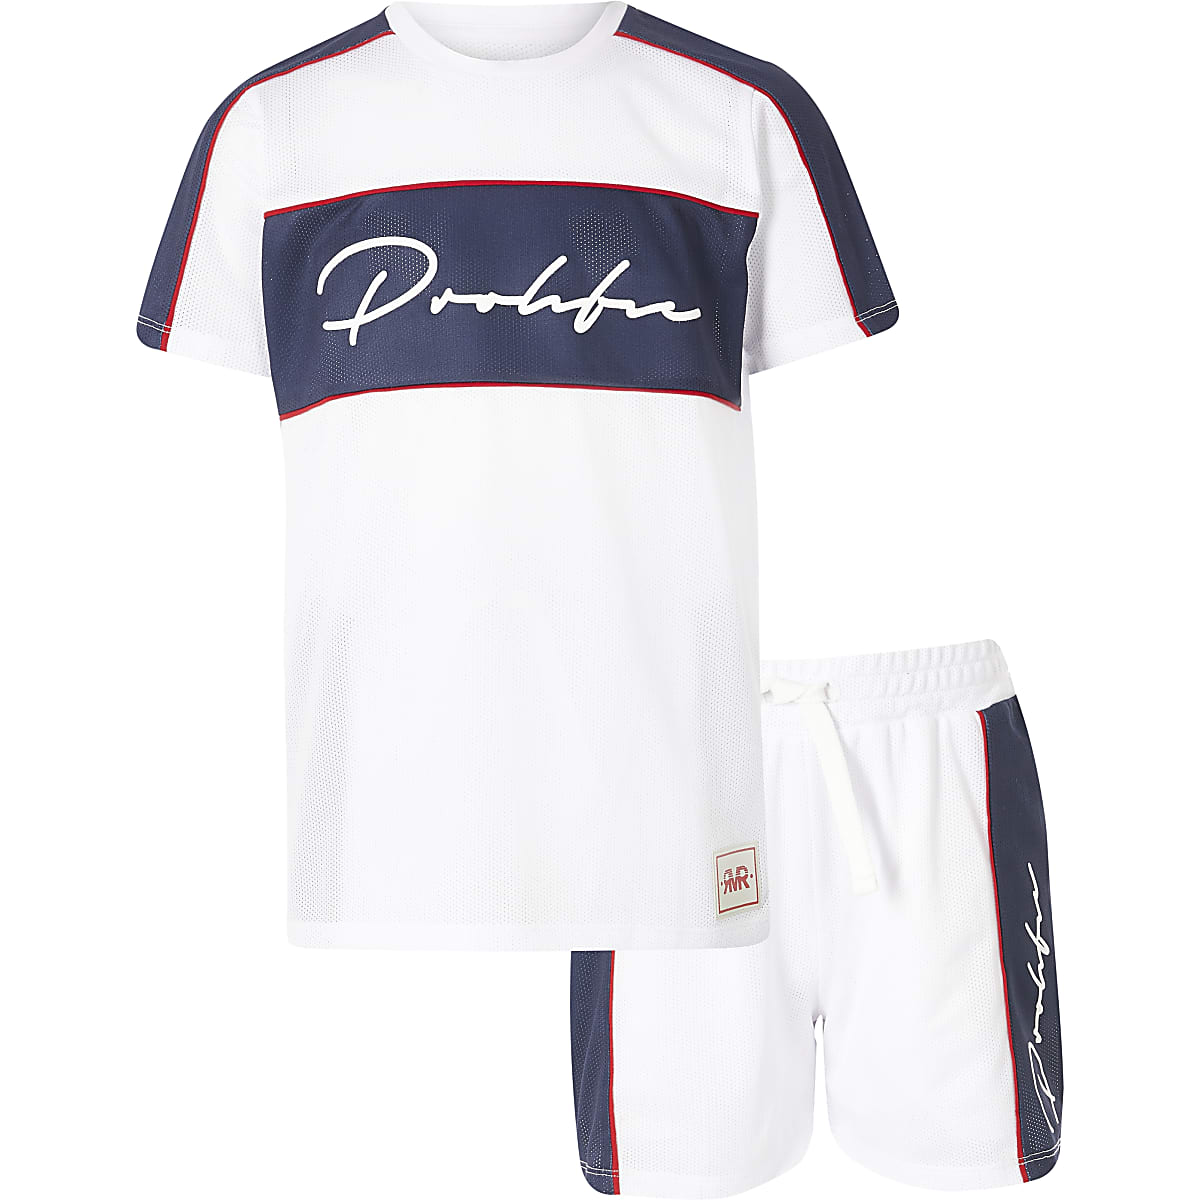 Boys white mesh 'Prolific' T-shirt outfit